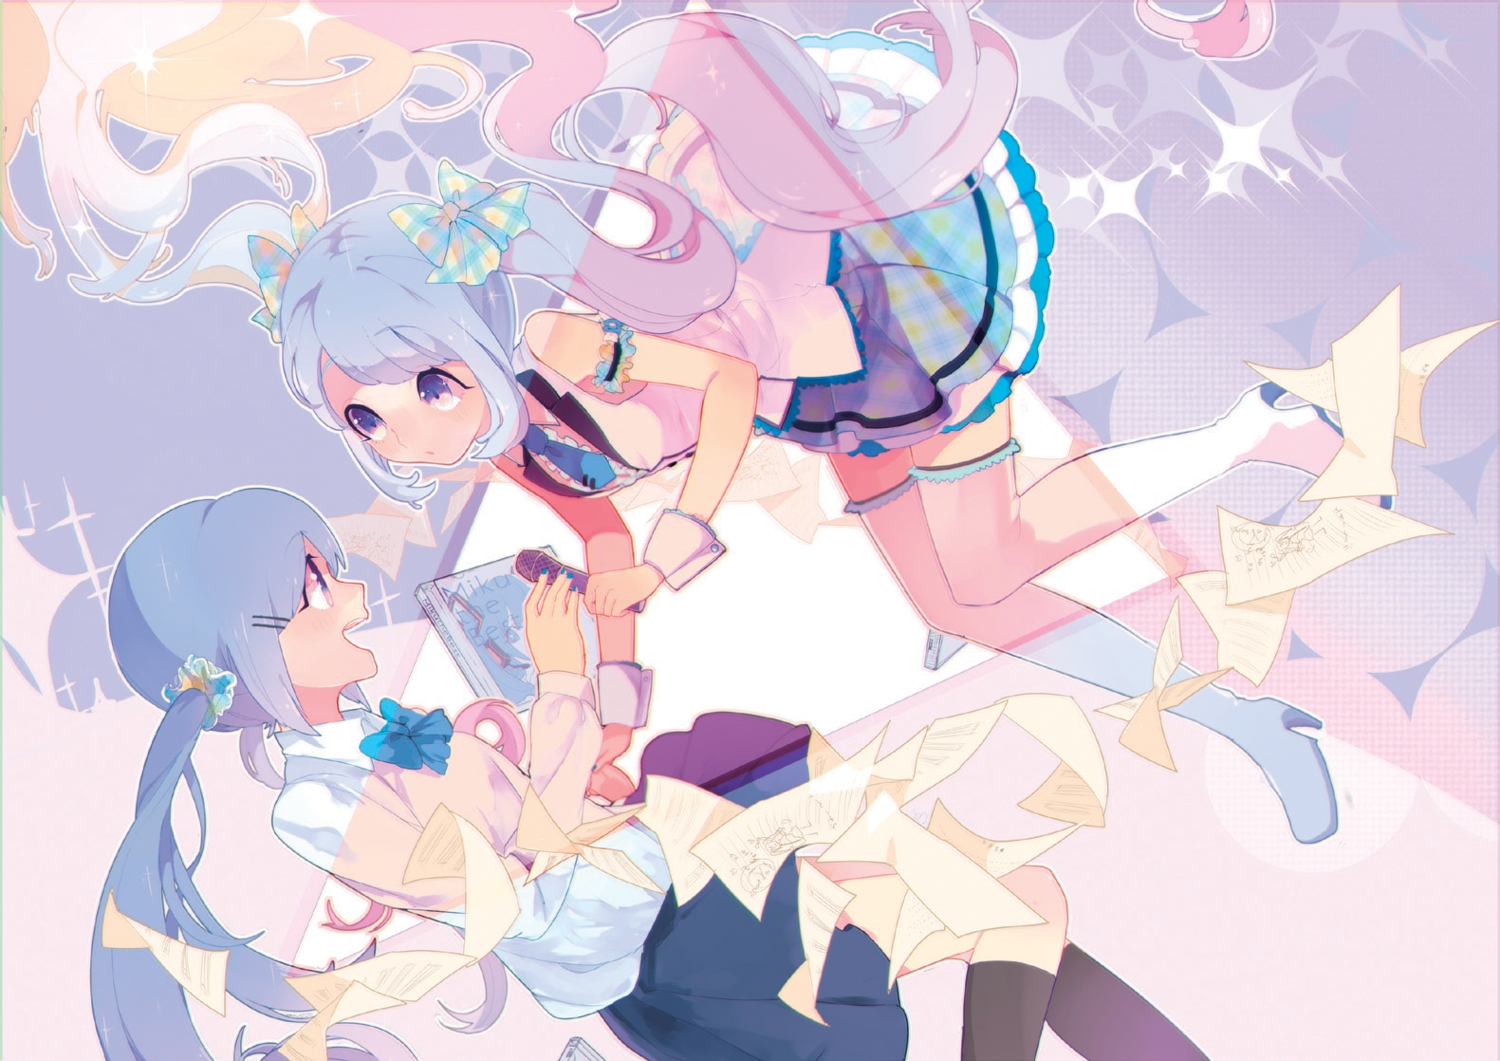 blue_eyes blue_hair hassan_(sink916) hatsune_miku microphone paper twintails vocaloid